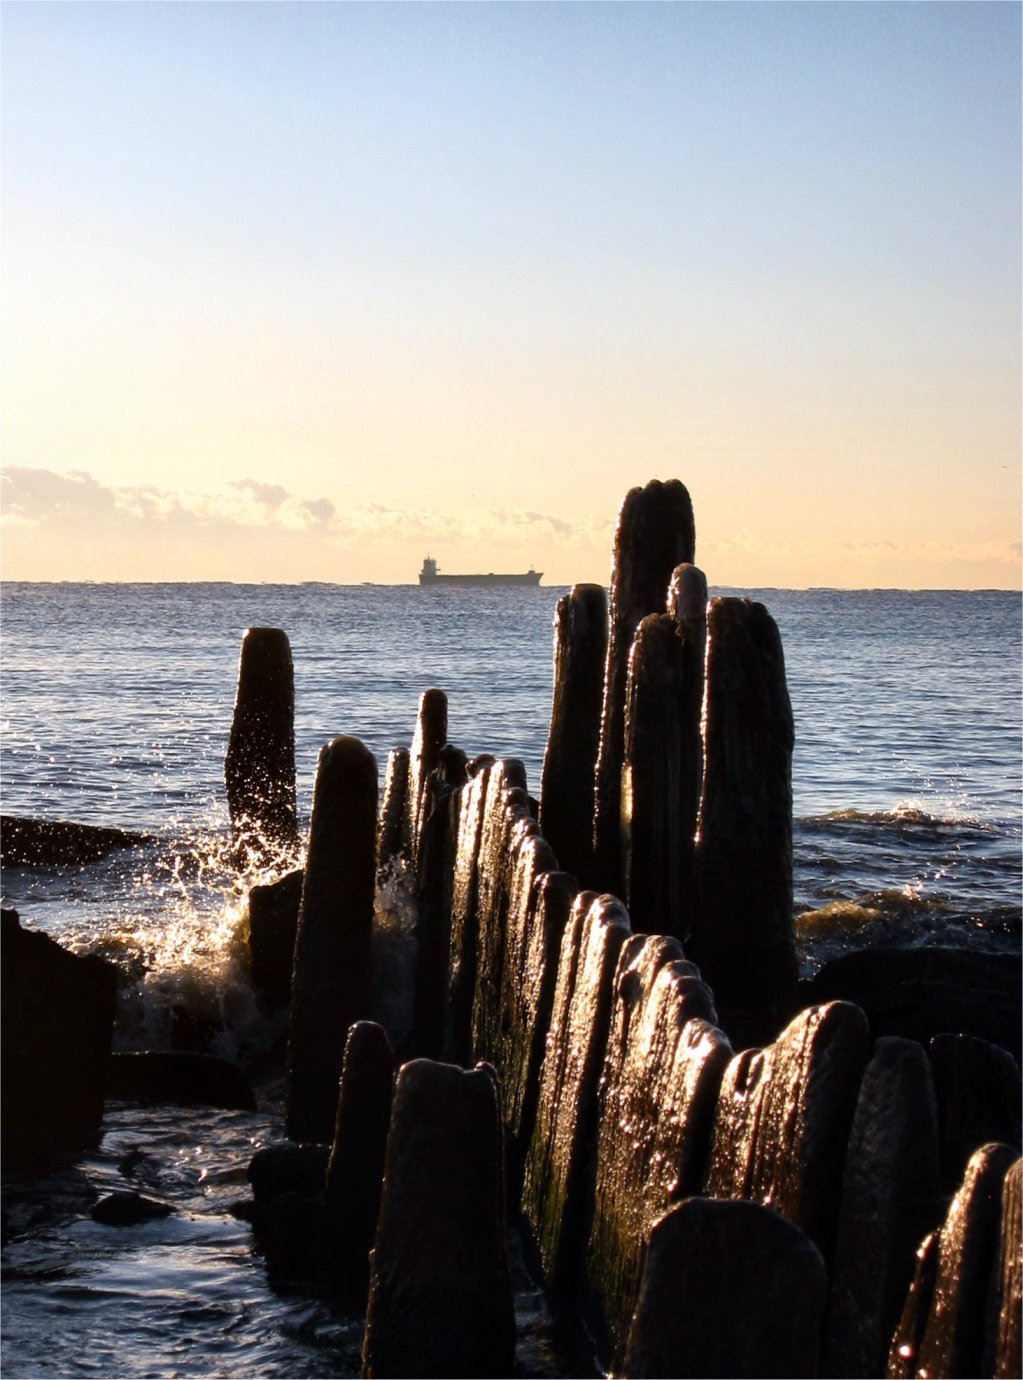 Bradford Beach Milwaukee - Old Pier with container ship - Milwaukee WI - Nov 2007 - Photo by Mike Fisk -- soul-amp.com